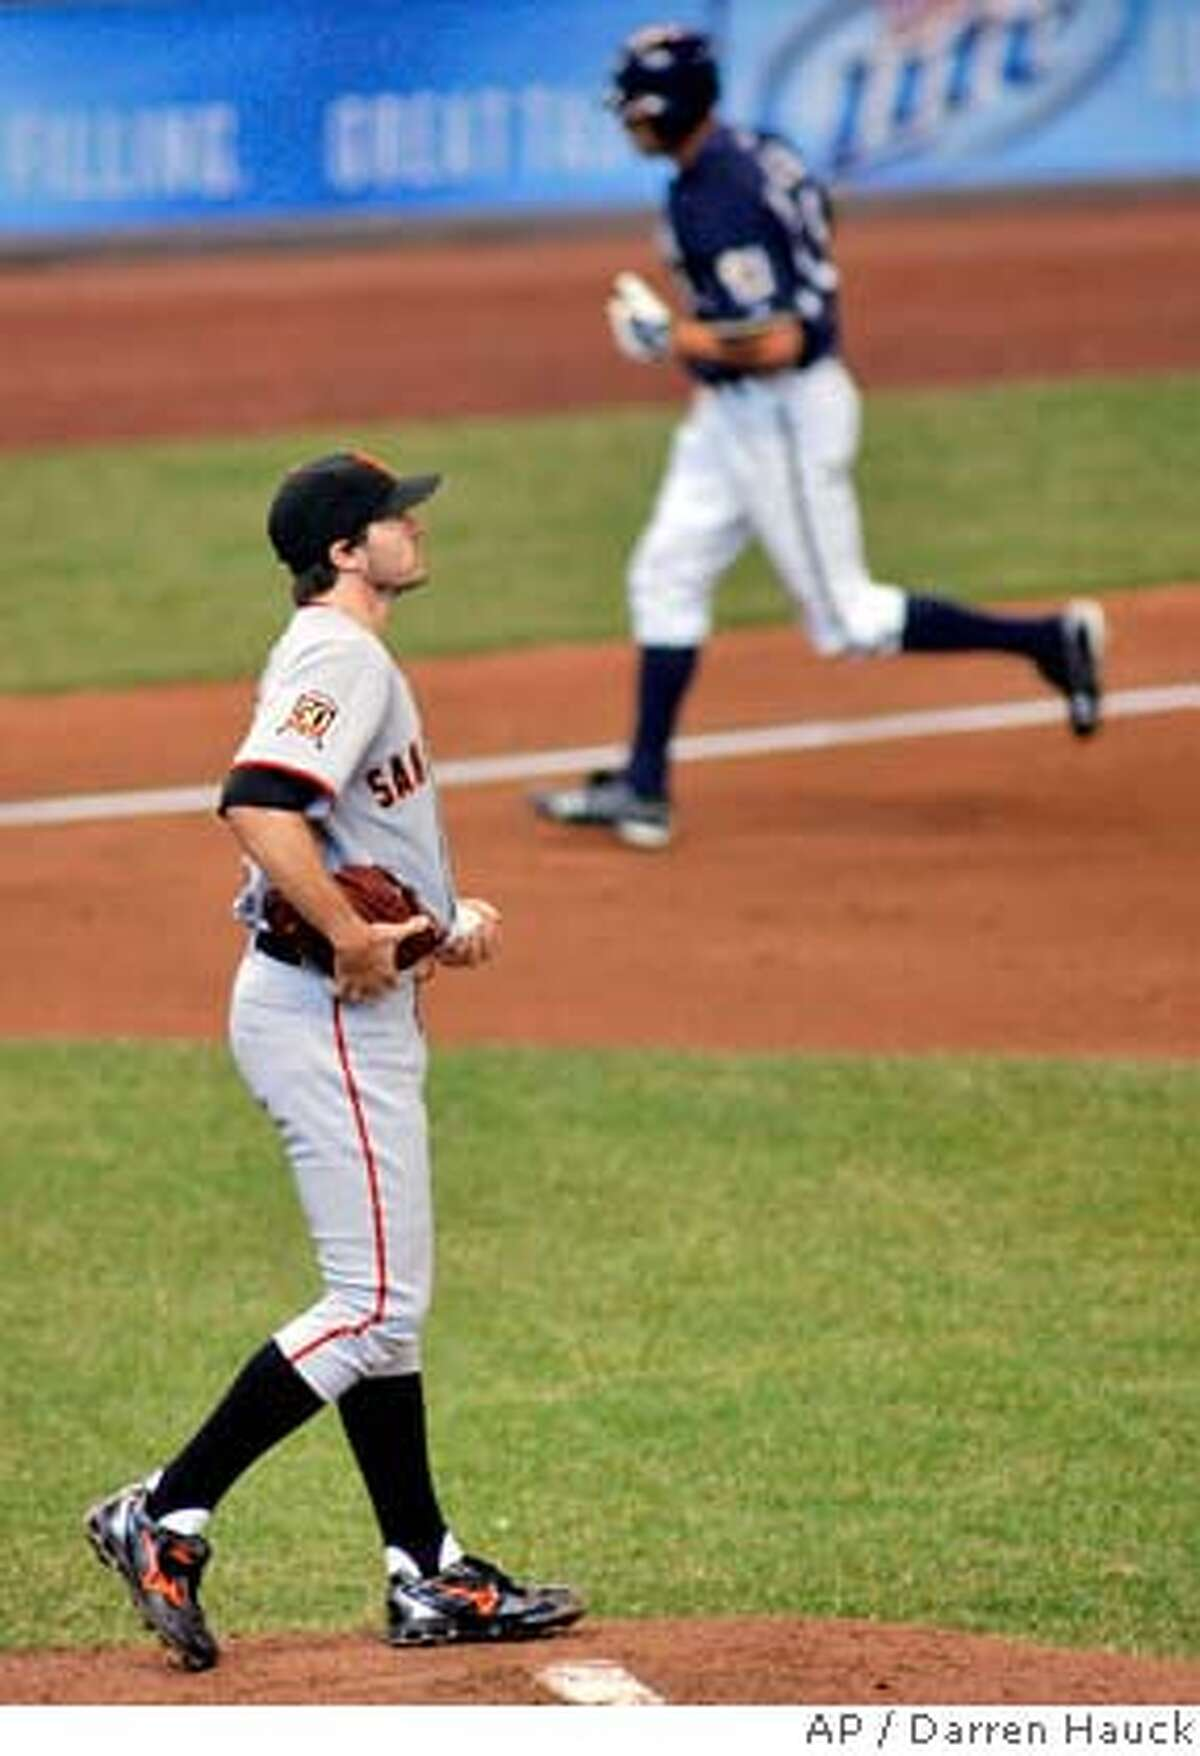 Milwaukee Brewers' Ryan Braun, right, rounds third base after hitting a home run against San Francisco Giants starting pitcher Barry Zito, left, in the fifth inning of the baseball game Sunday, April 6, 2008, in Milwaukee. (AP Photo/Darren Hauck)